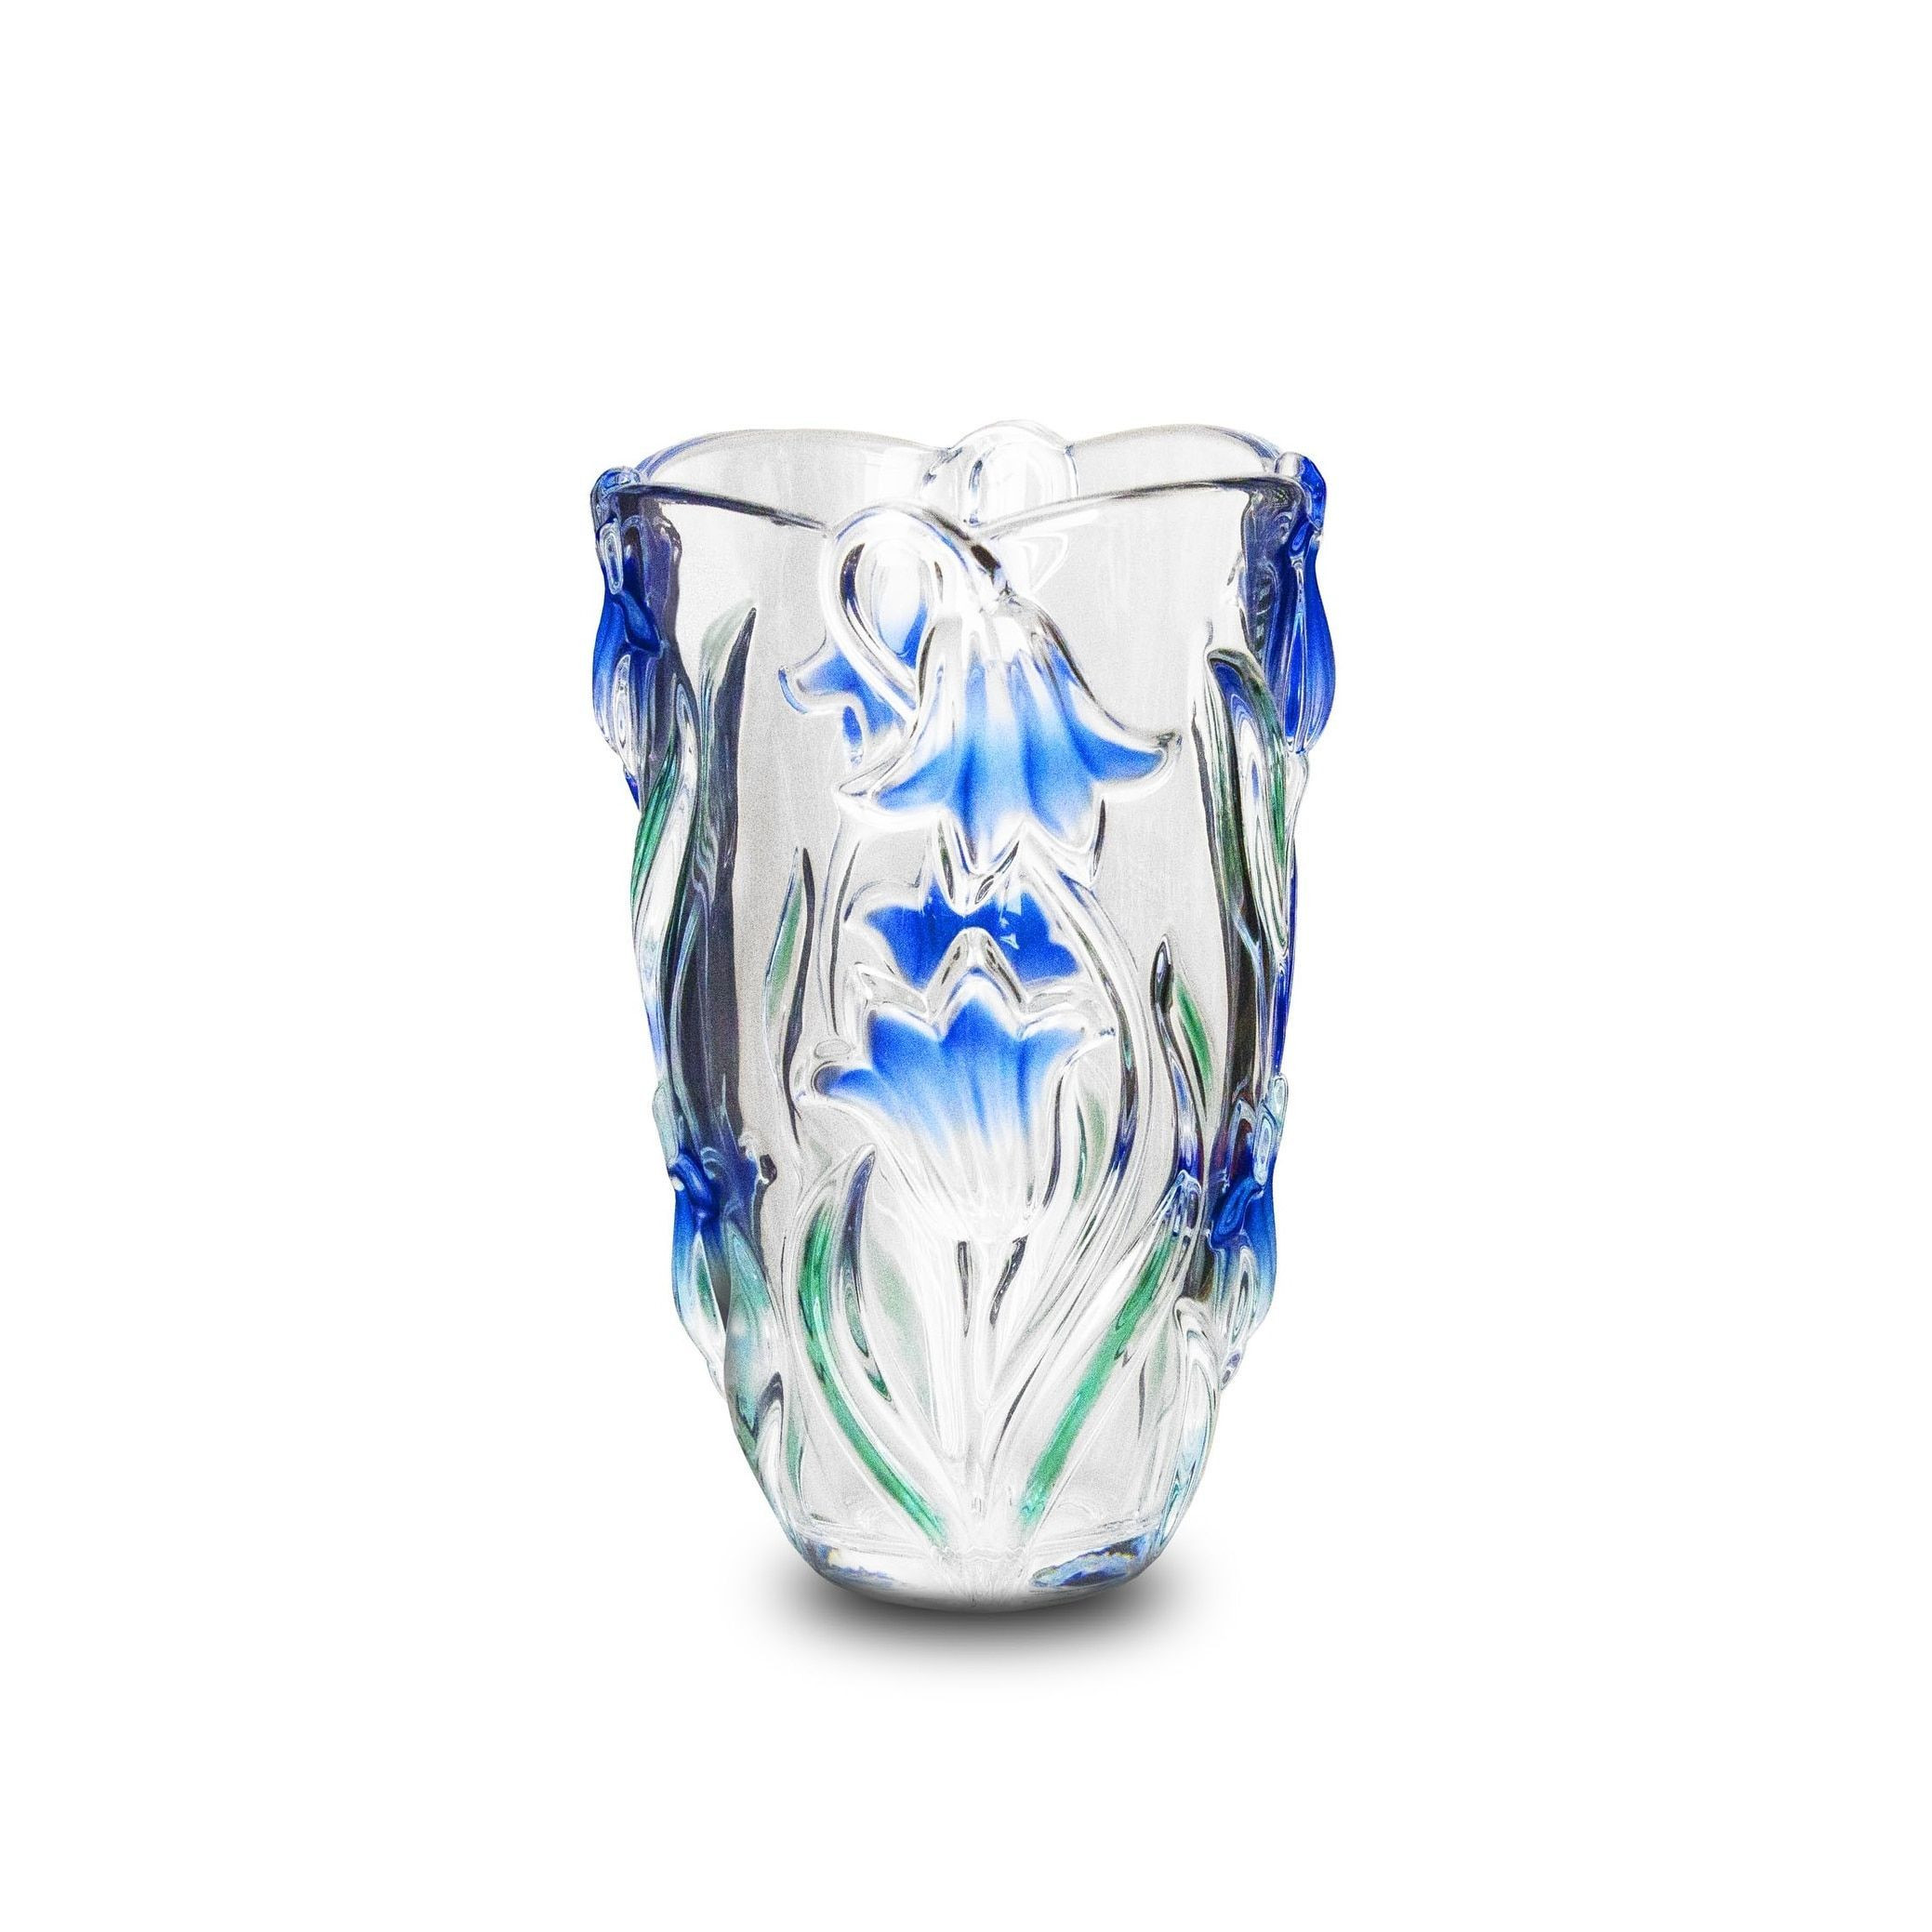 glass seashell vase of 21 crystal glass vase the weekly world throughout studio silversmiths blue danube collection crystal vase